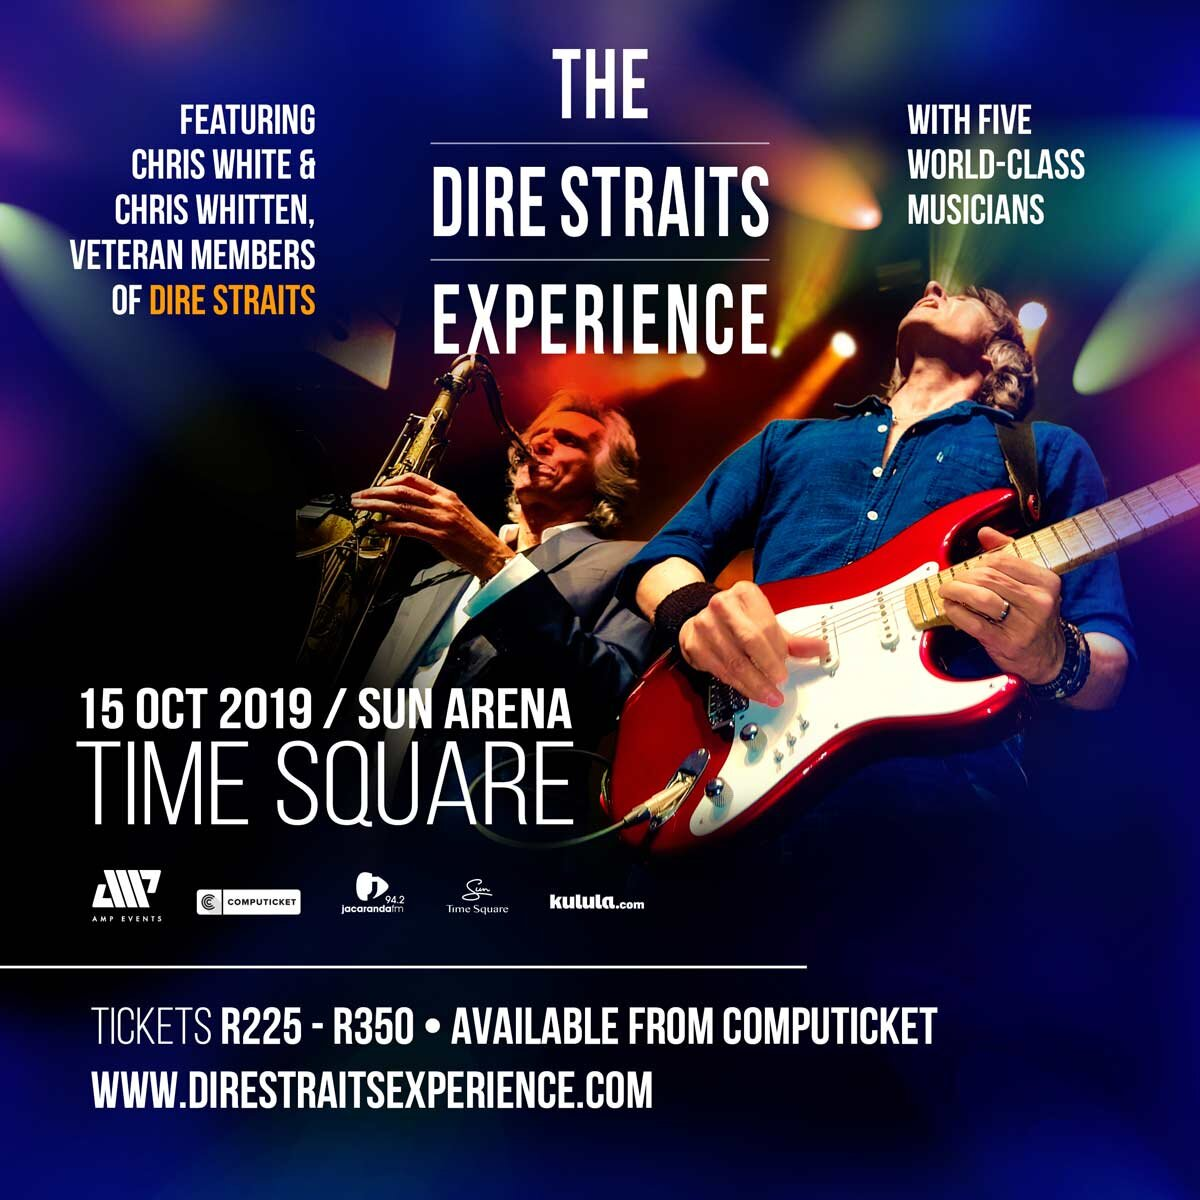 The-Dire-Straits-Experience-in-South-Africa.jpg